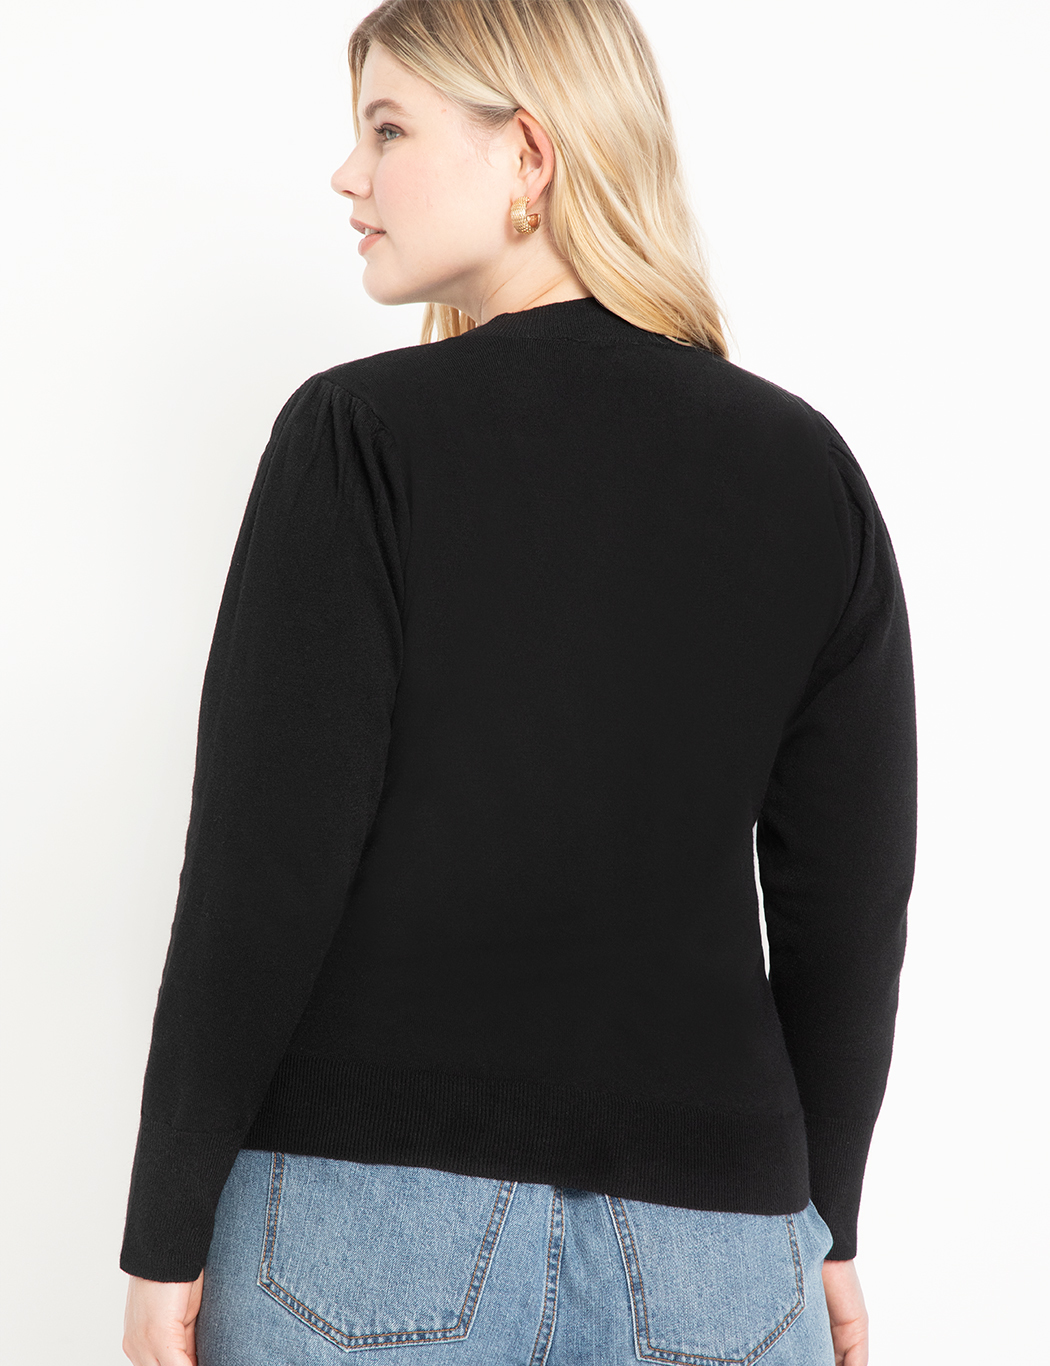 Sweater with Tie Neck